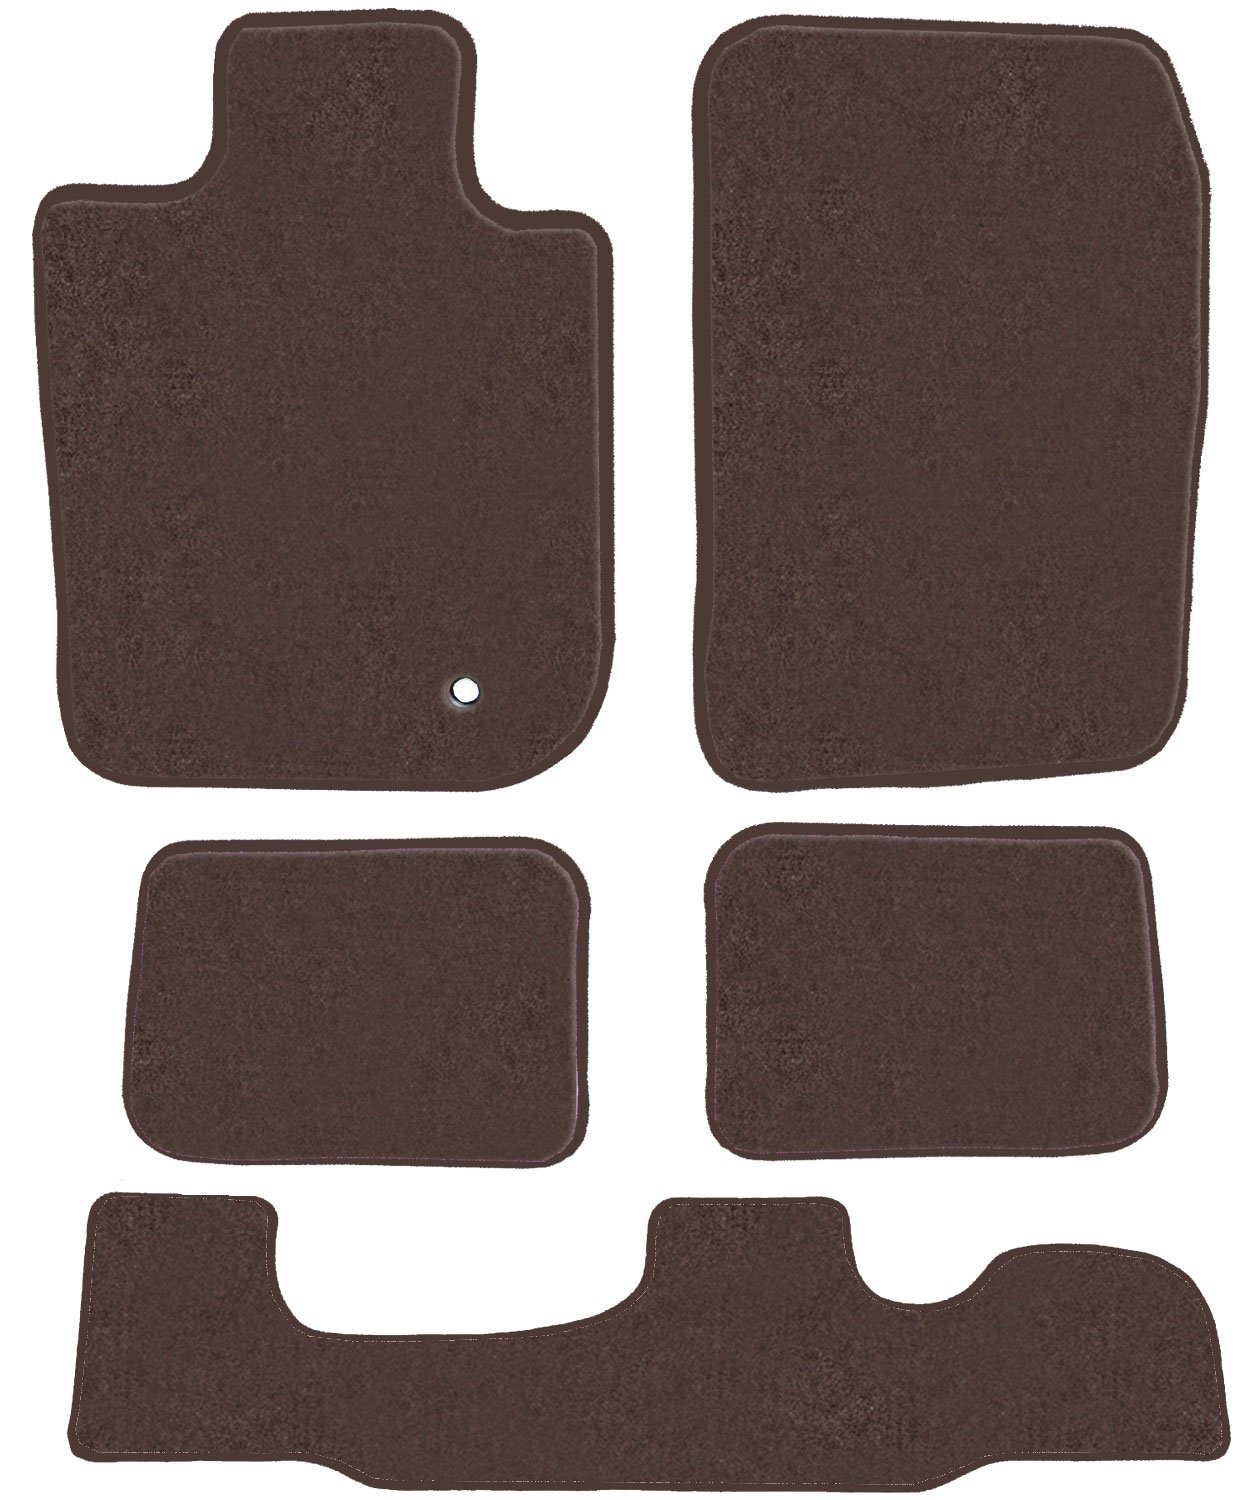 2nd /& 3rd Row 2006 Ford Expedition Brown Driver 2004 GGBAILEY D3656A-LSB-CH-BR Custom Fit Car Mats for 2003 5 Piece Floor Passenger 2005